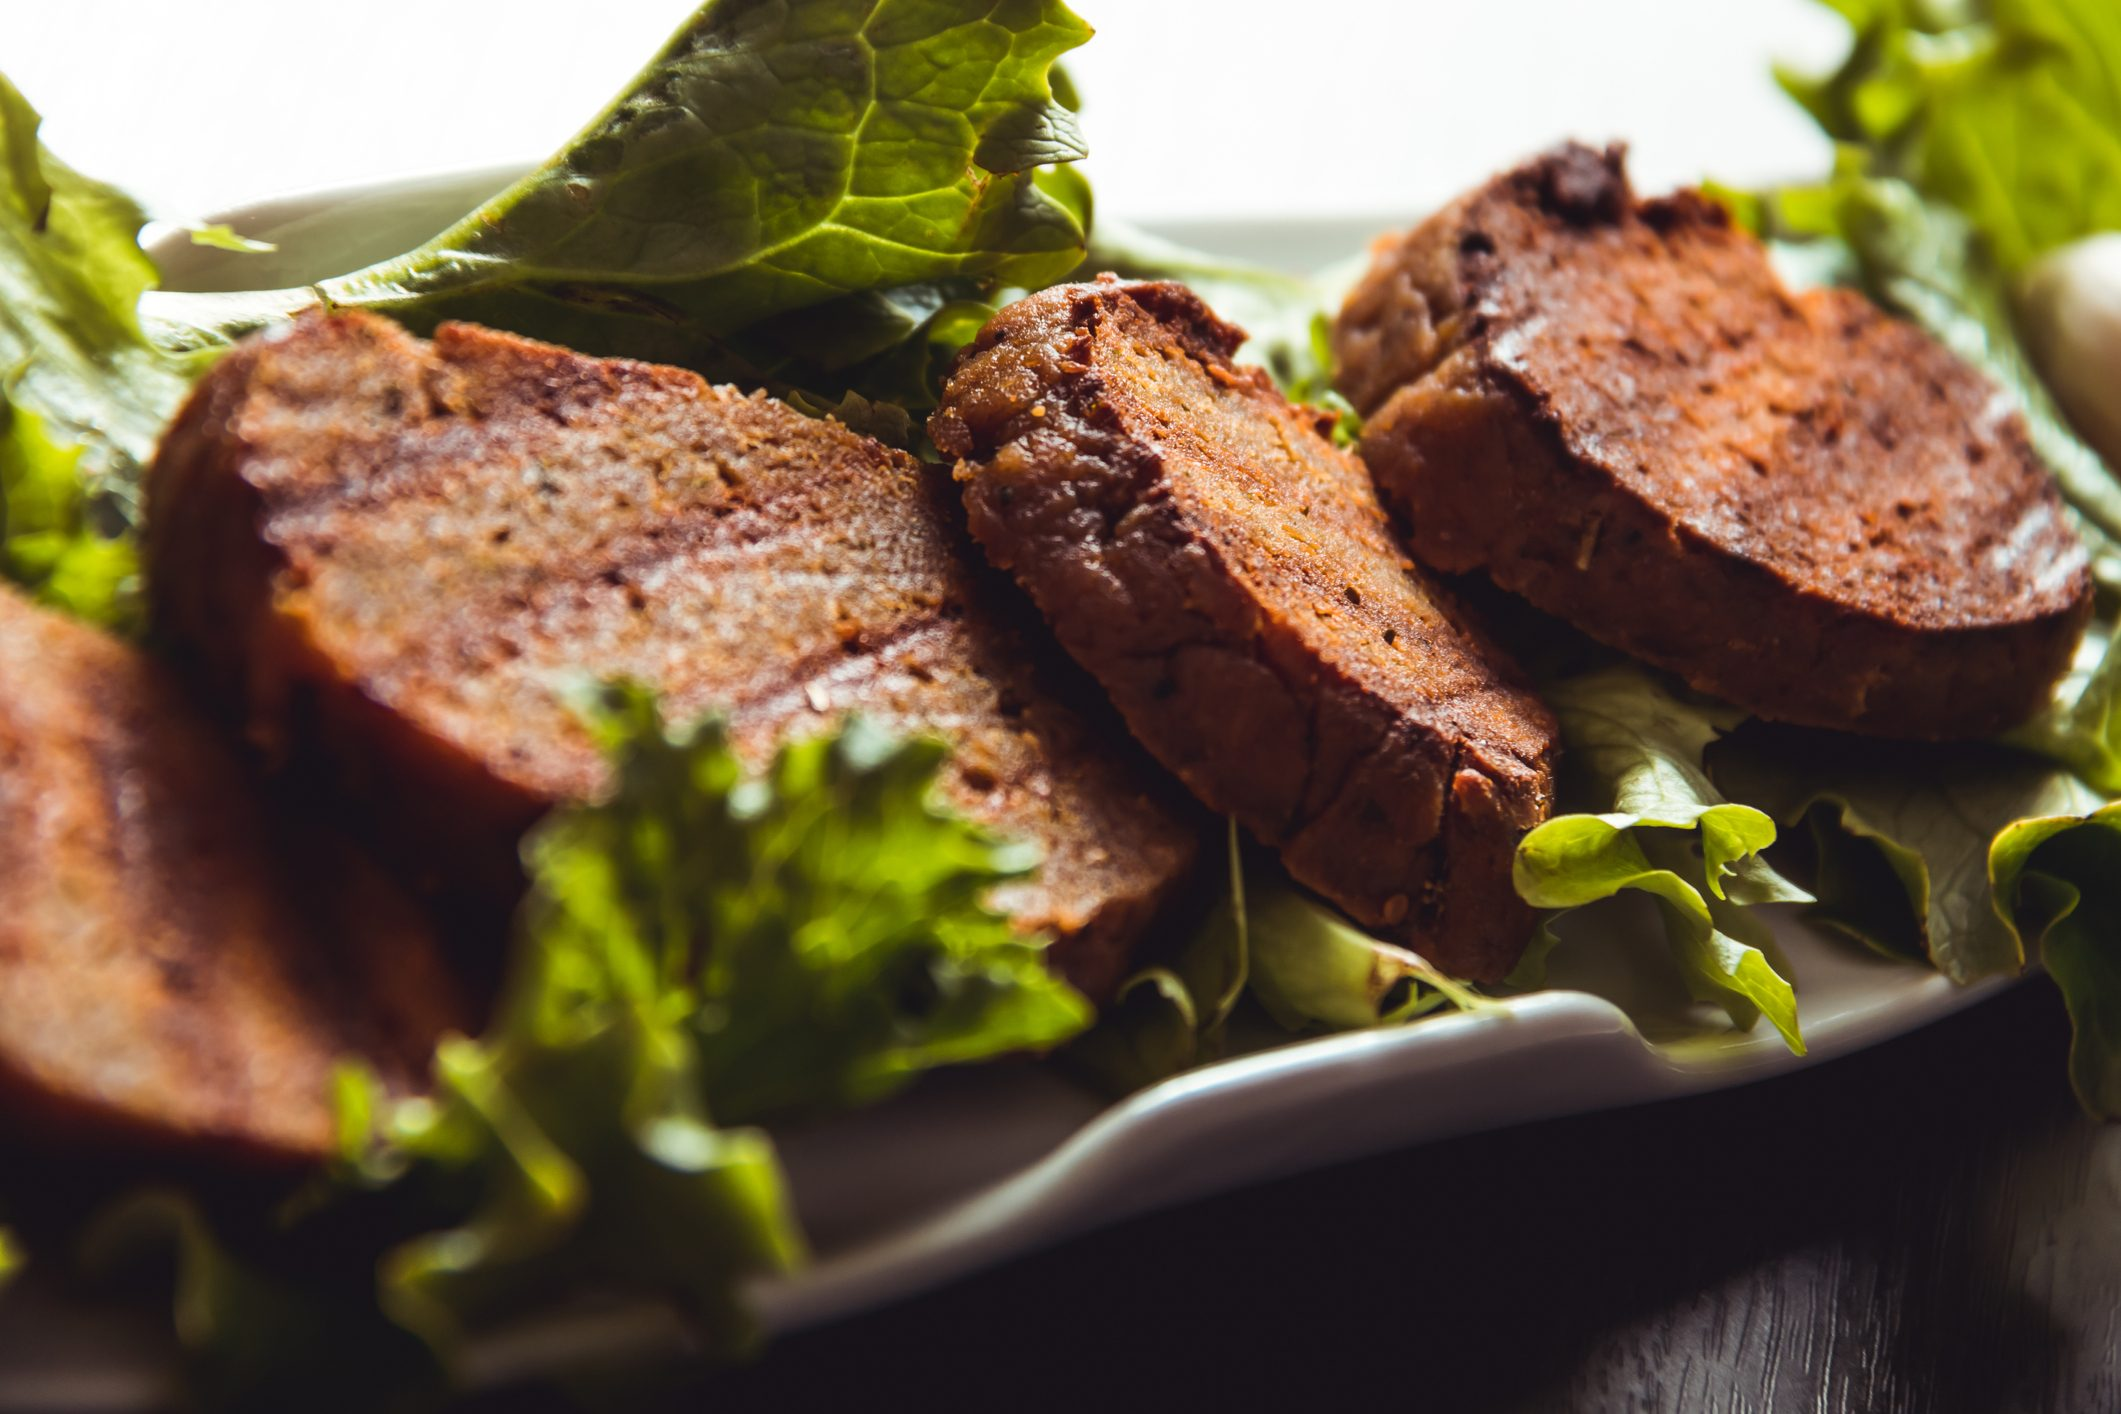 cooked seitan on bed of lettuce